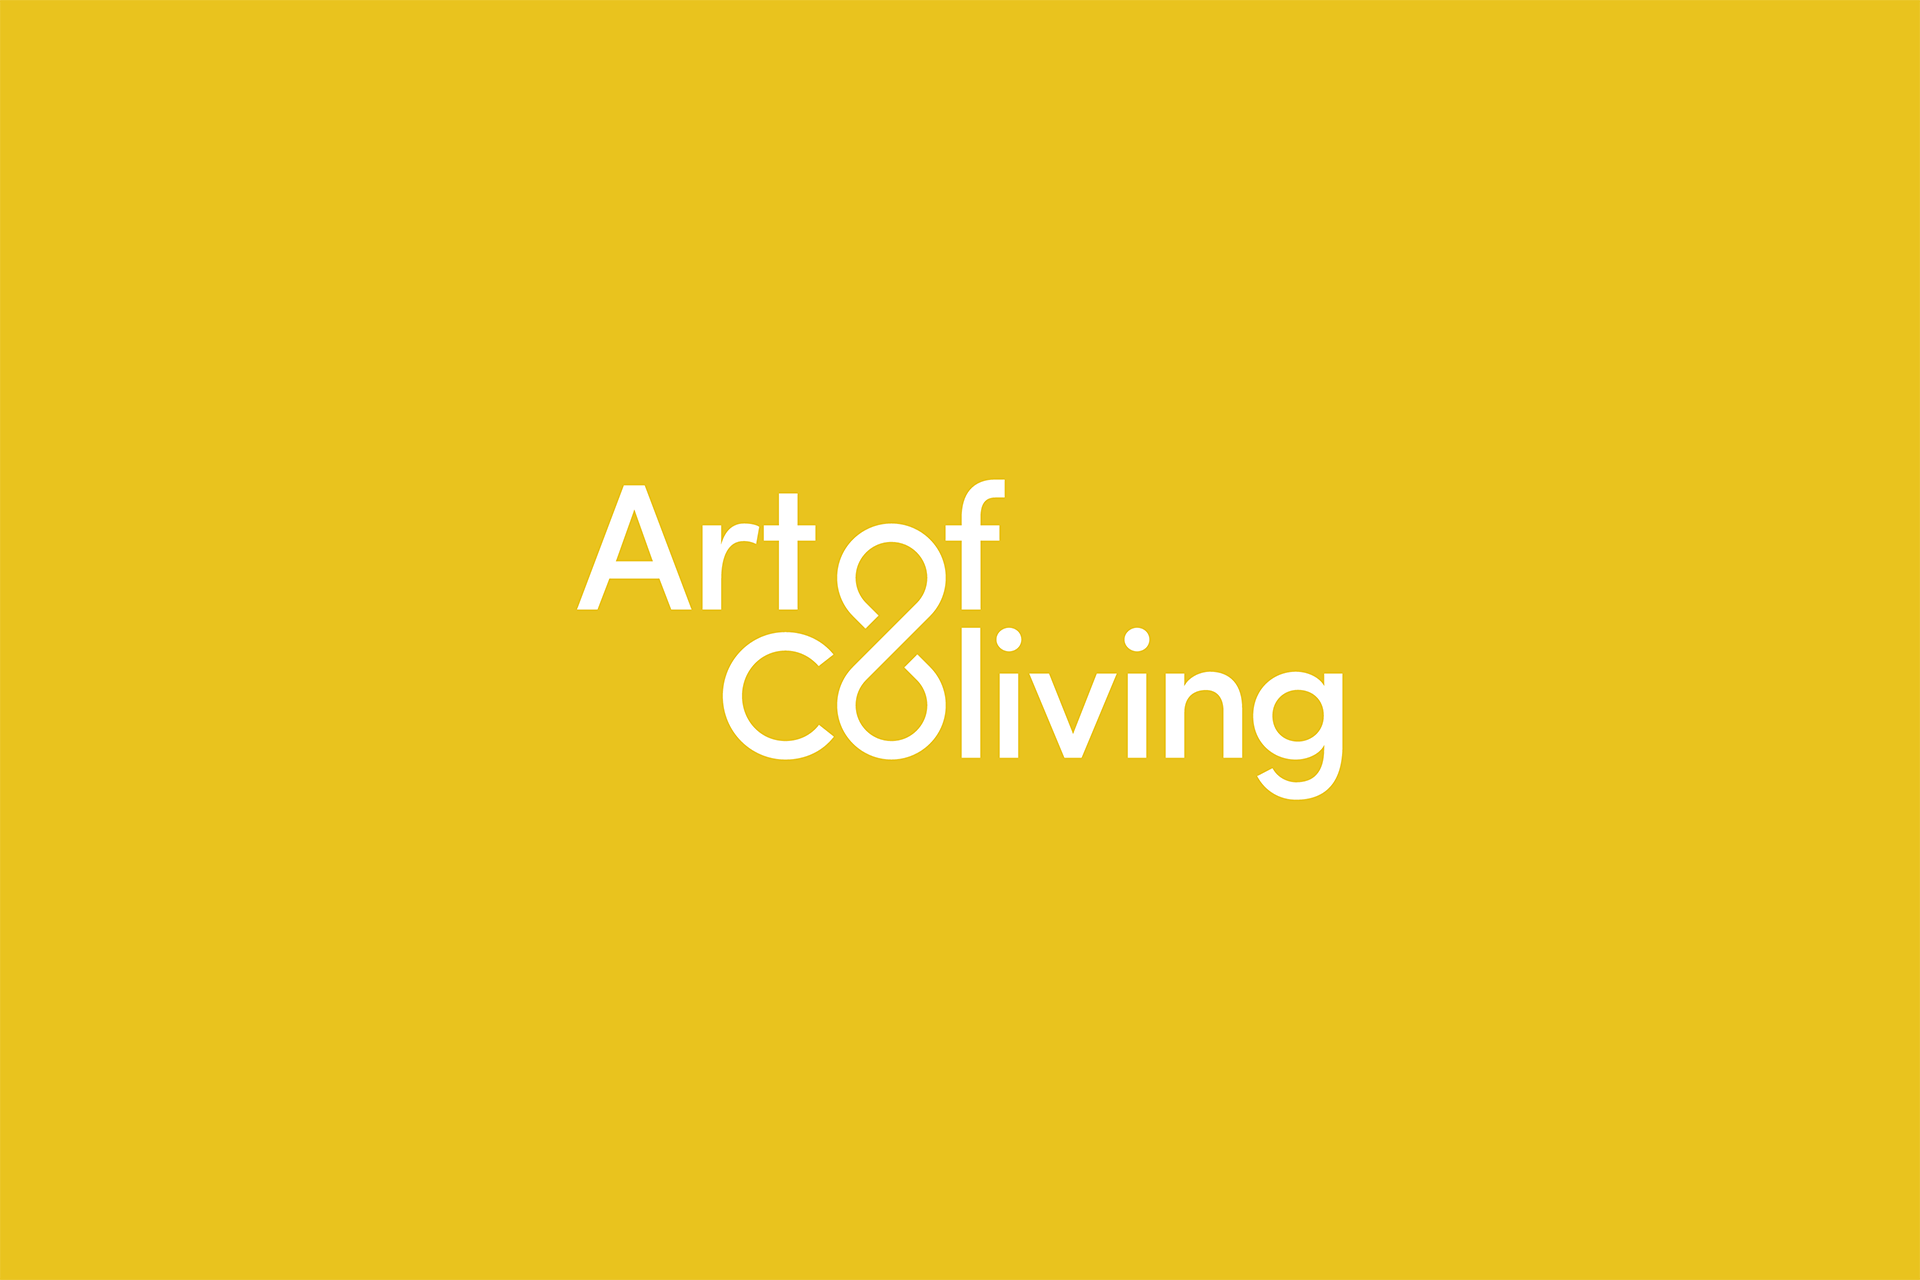 Art of Coliving white logotype by SPX on a yellow background